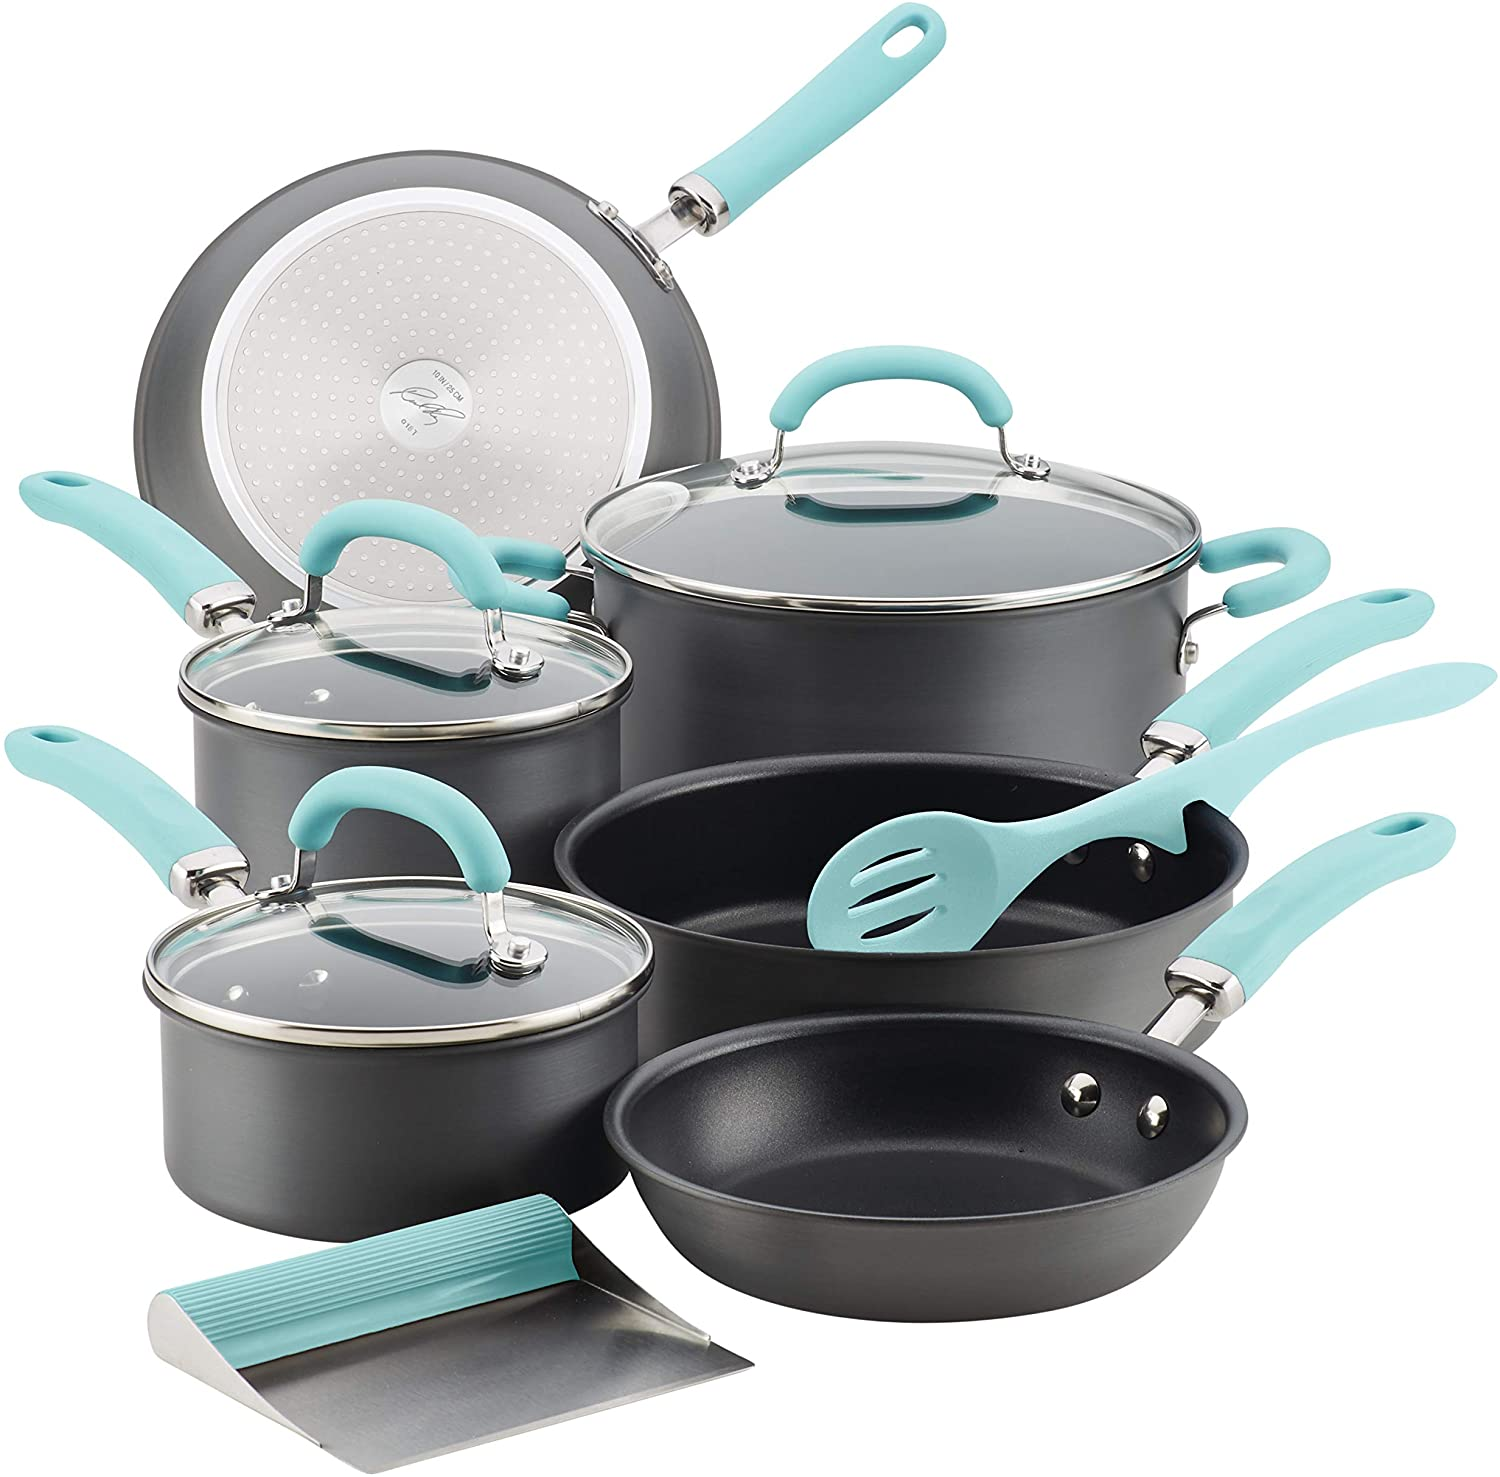 Rachael Ray Create Delicious Hard Anodized Nonstick Cookware Pots and Pans Set, 11 Piece, Gray with Light Blue Handles